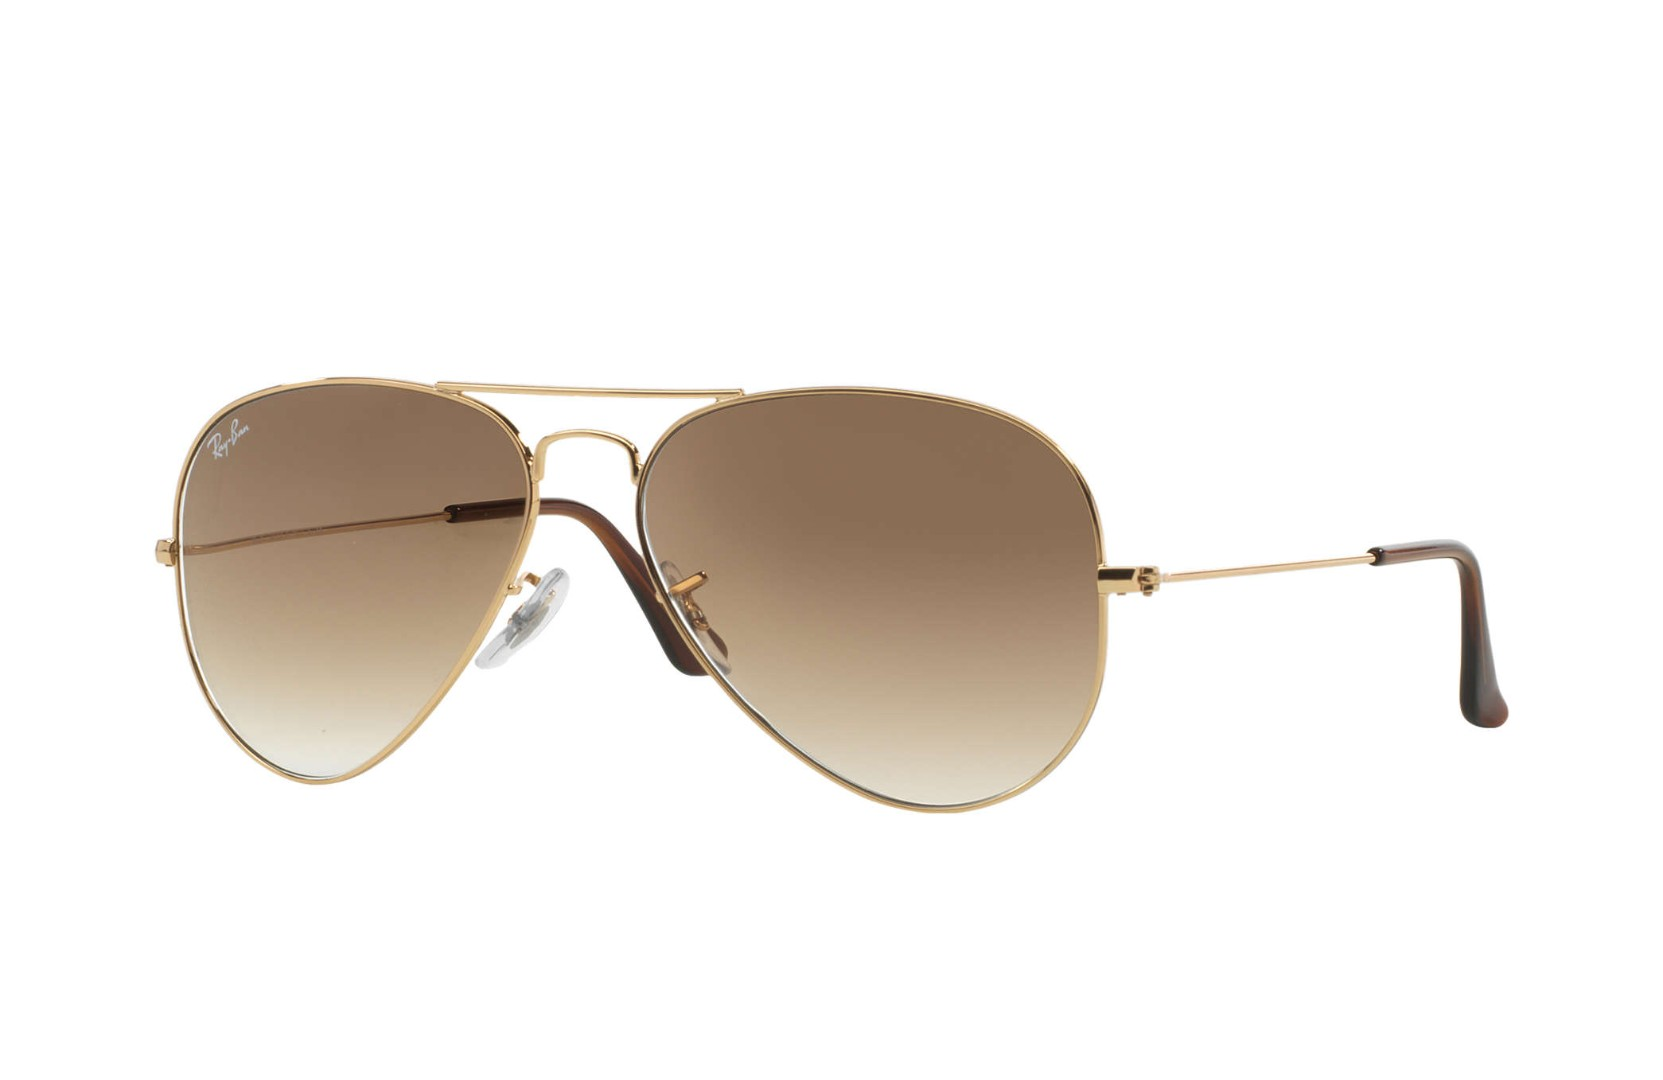 0a515c83f98e Aviator Large Metal RB3025 001 51 350 руб. NEW COLOR